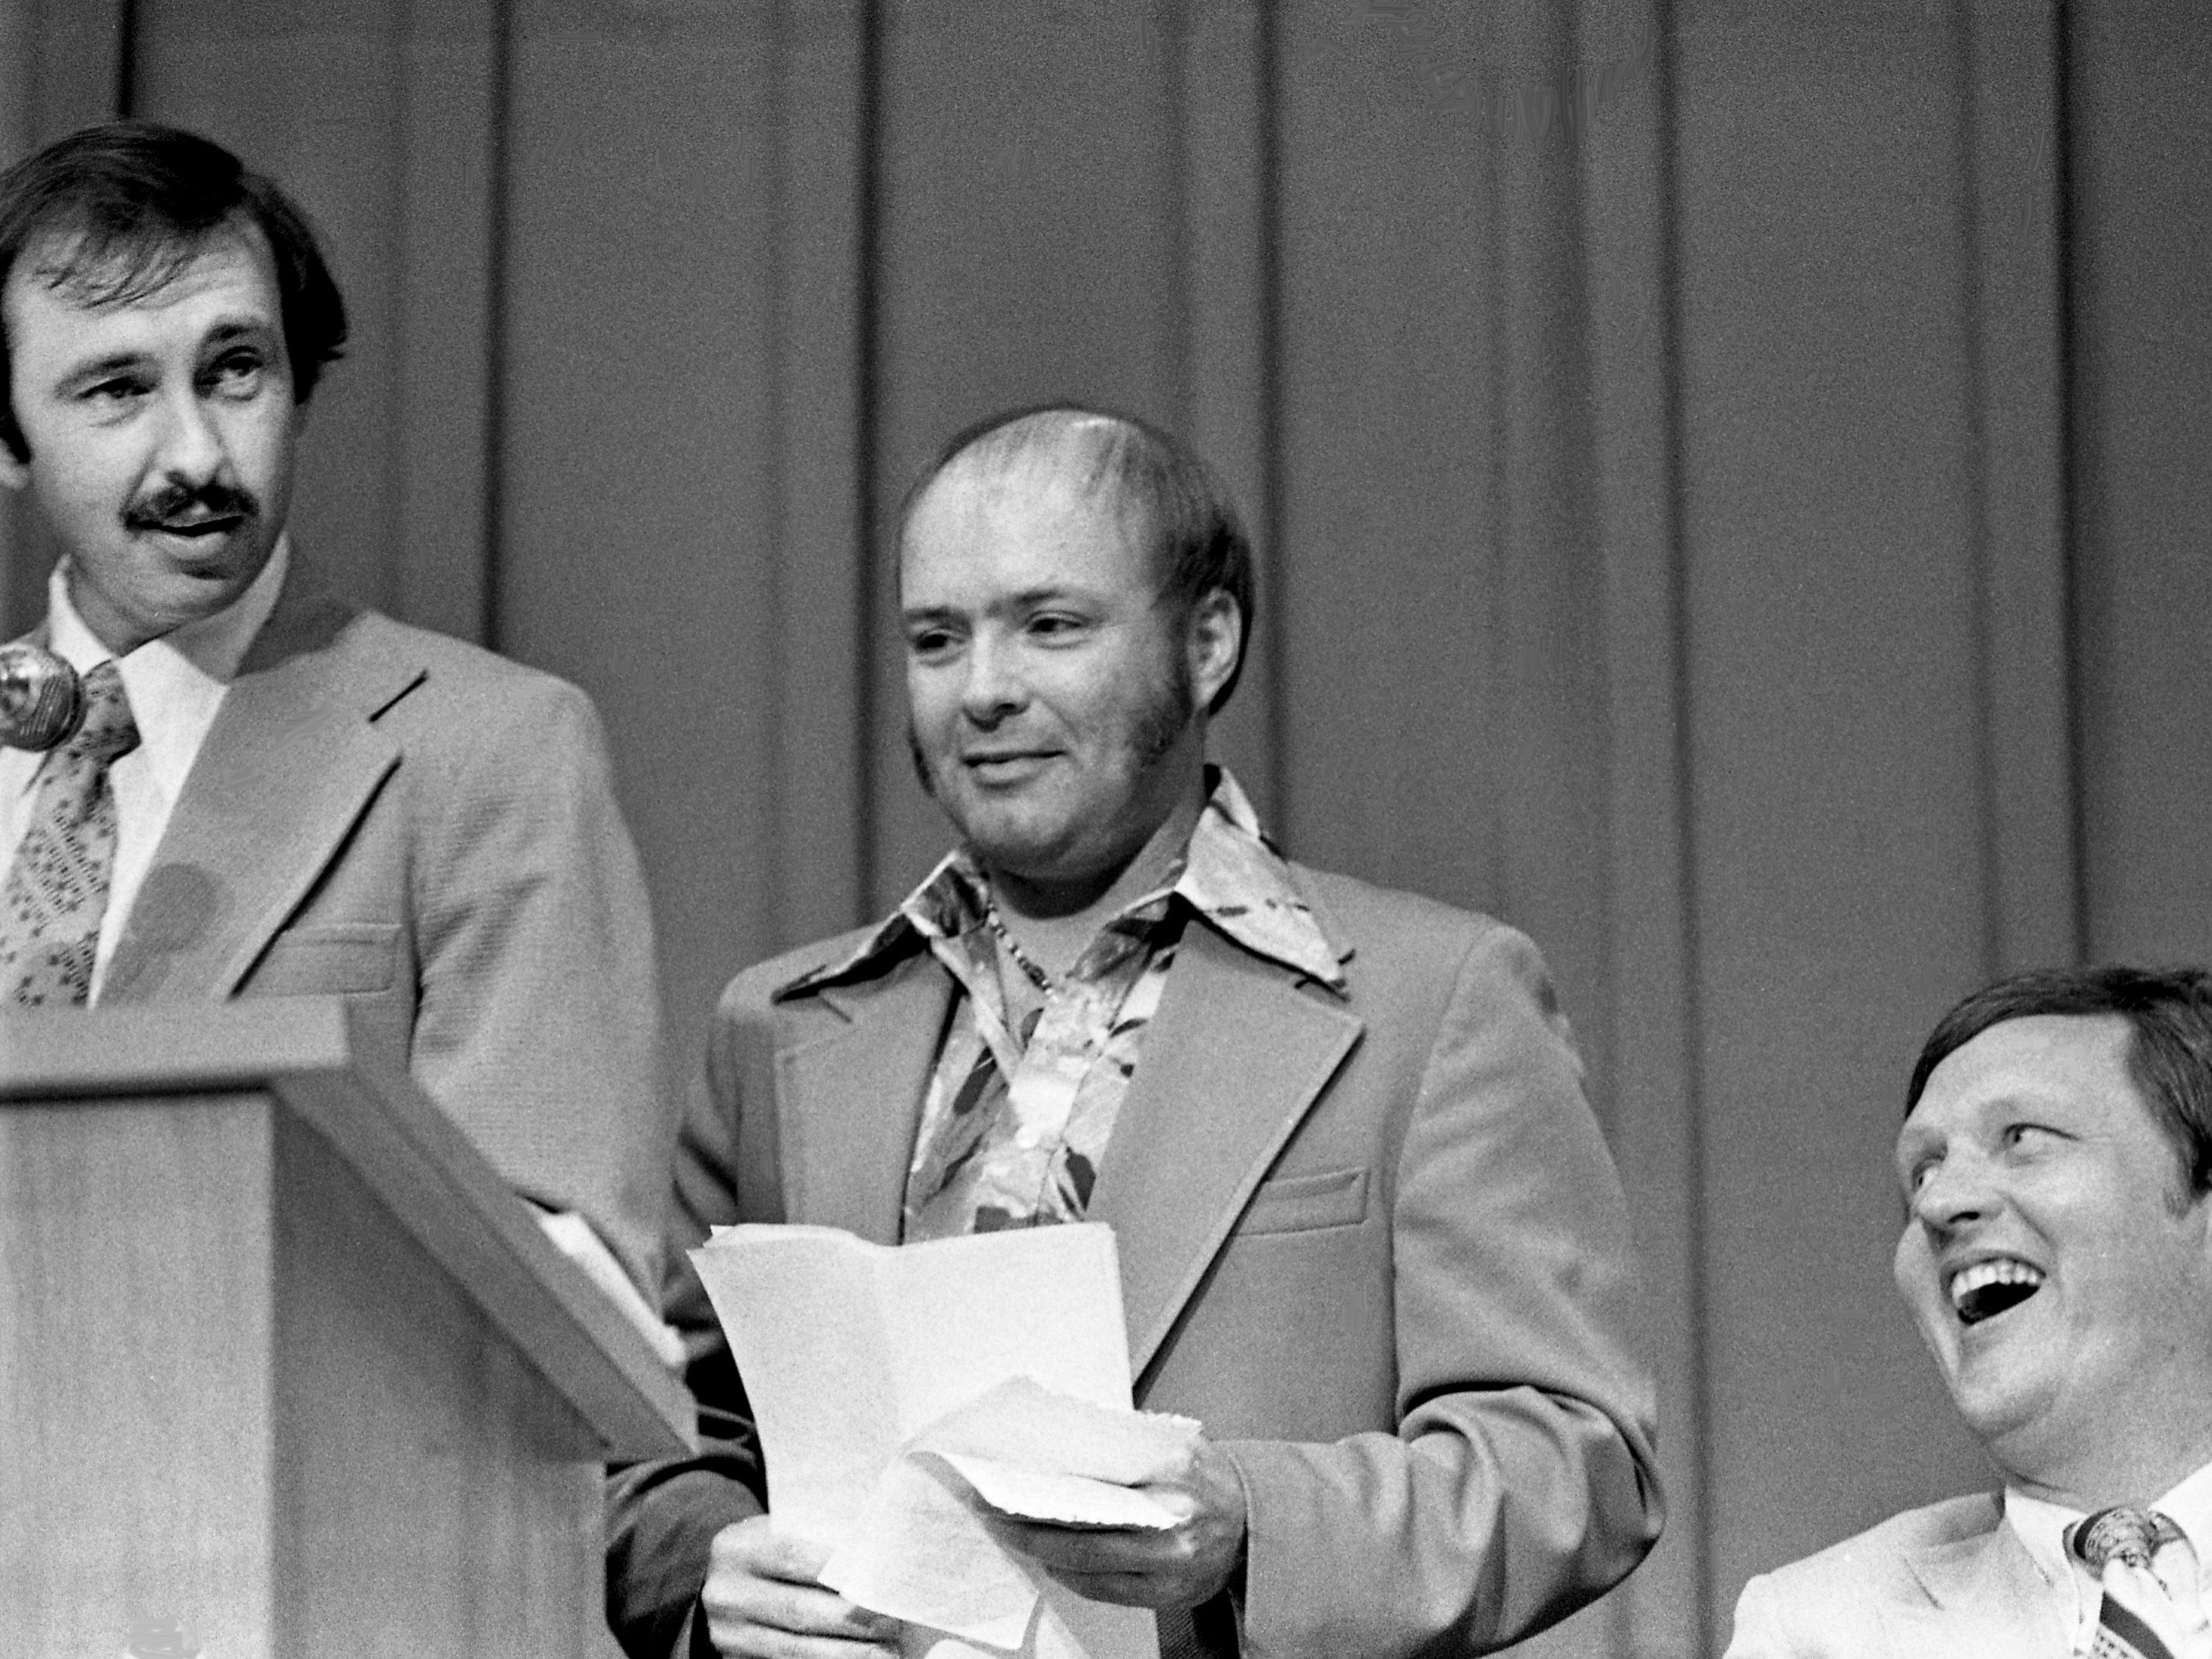 Former Middle Tennessee State University head basketball coach Jimmy Earle, right, who retired after the season ended, lets out a hearty laugh as The Tennessean sportswriter Larry Woody, left, and Nashville Banner sportswriter Joe Caldwell roast and toast him during an appreciation testimonial on campus April 26, 1979.